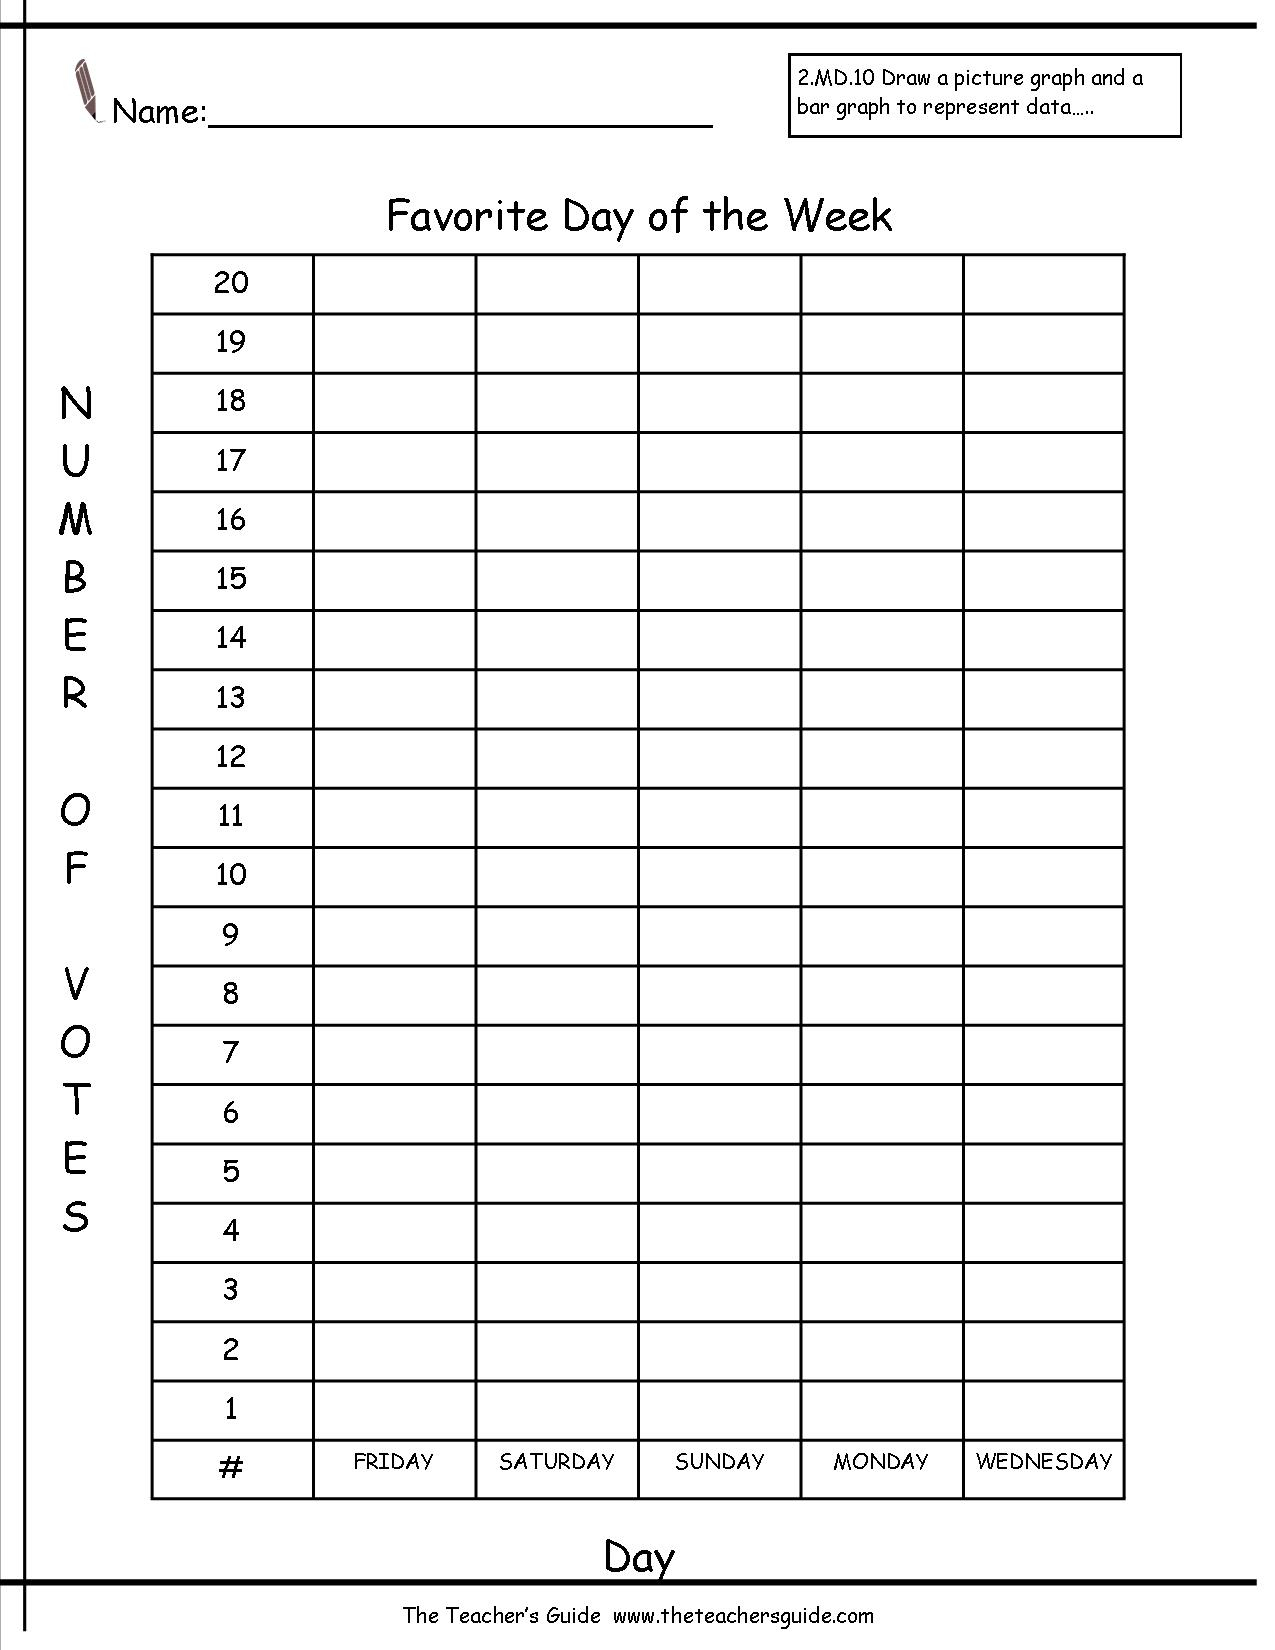 Reading And Creating Bar Graphs Worksheets From The Teacher's Guide | Blank Bar Graph Printable Worksheets